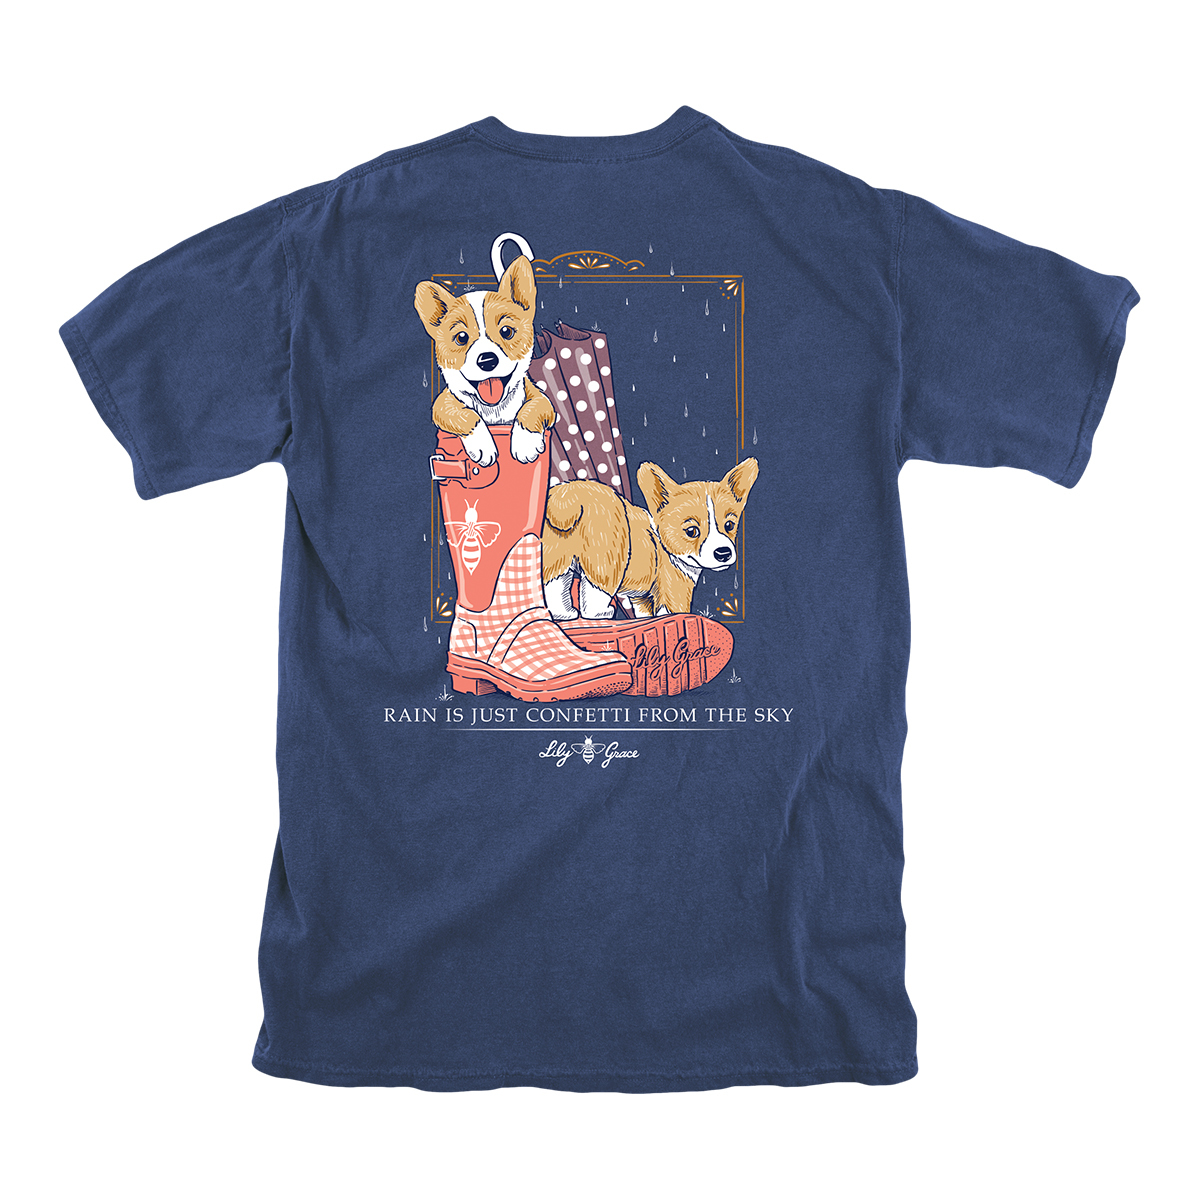 Lily Grace Rain is Confetti T-Shirt